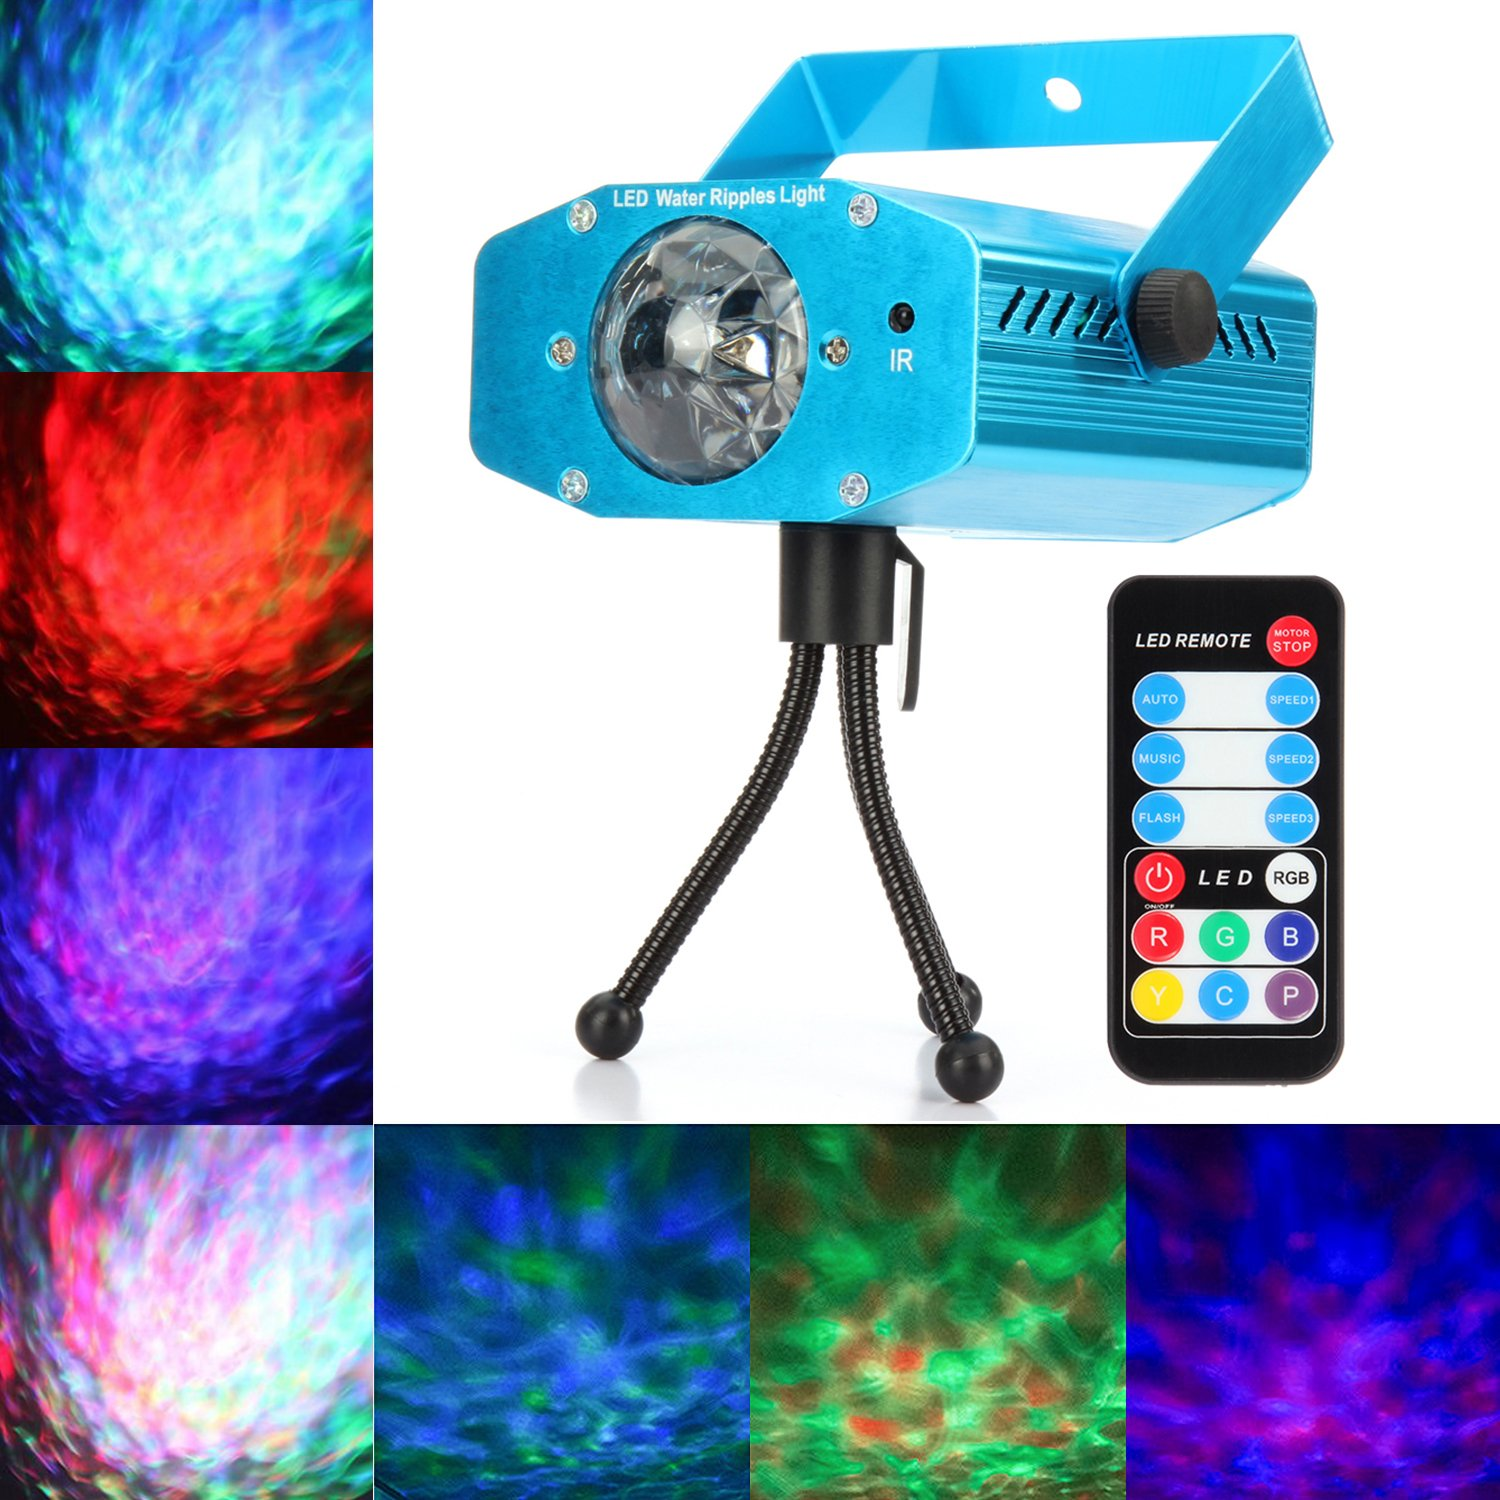 LED Disco DJ Party Laser Lights, Mini Auto Flash 7 RGB Color Stage Strobe Lights Sound Activated for Parties Room Show Birthday Party Wedding Dance Lighting with Remote Control, Blue